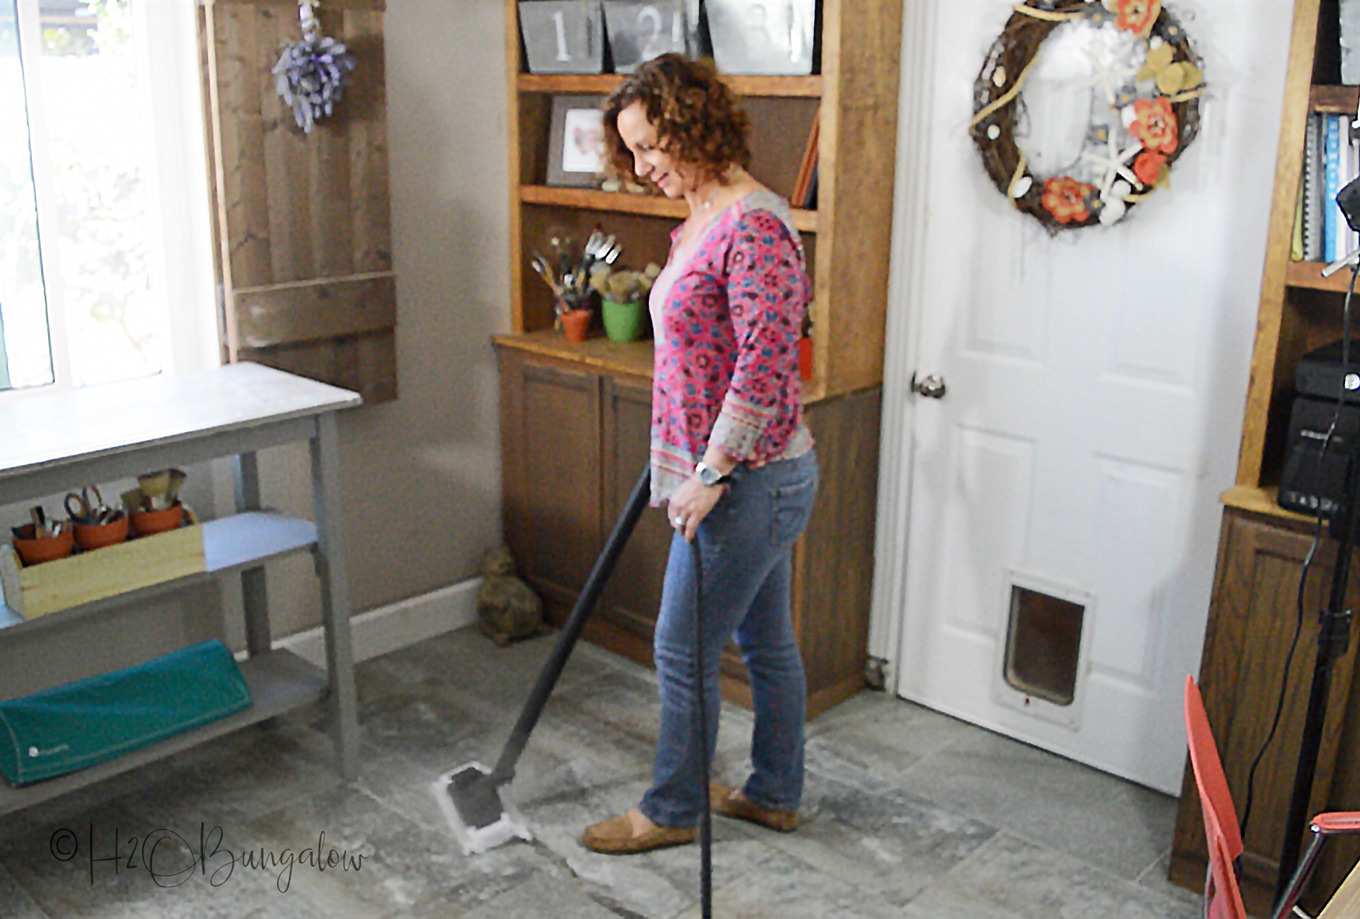 Deep Clean Tile Floors With Steam H20bungalow